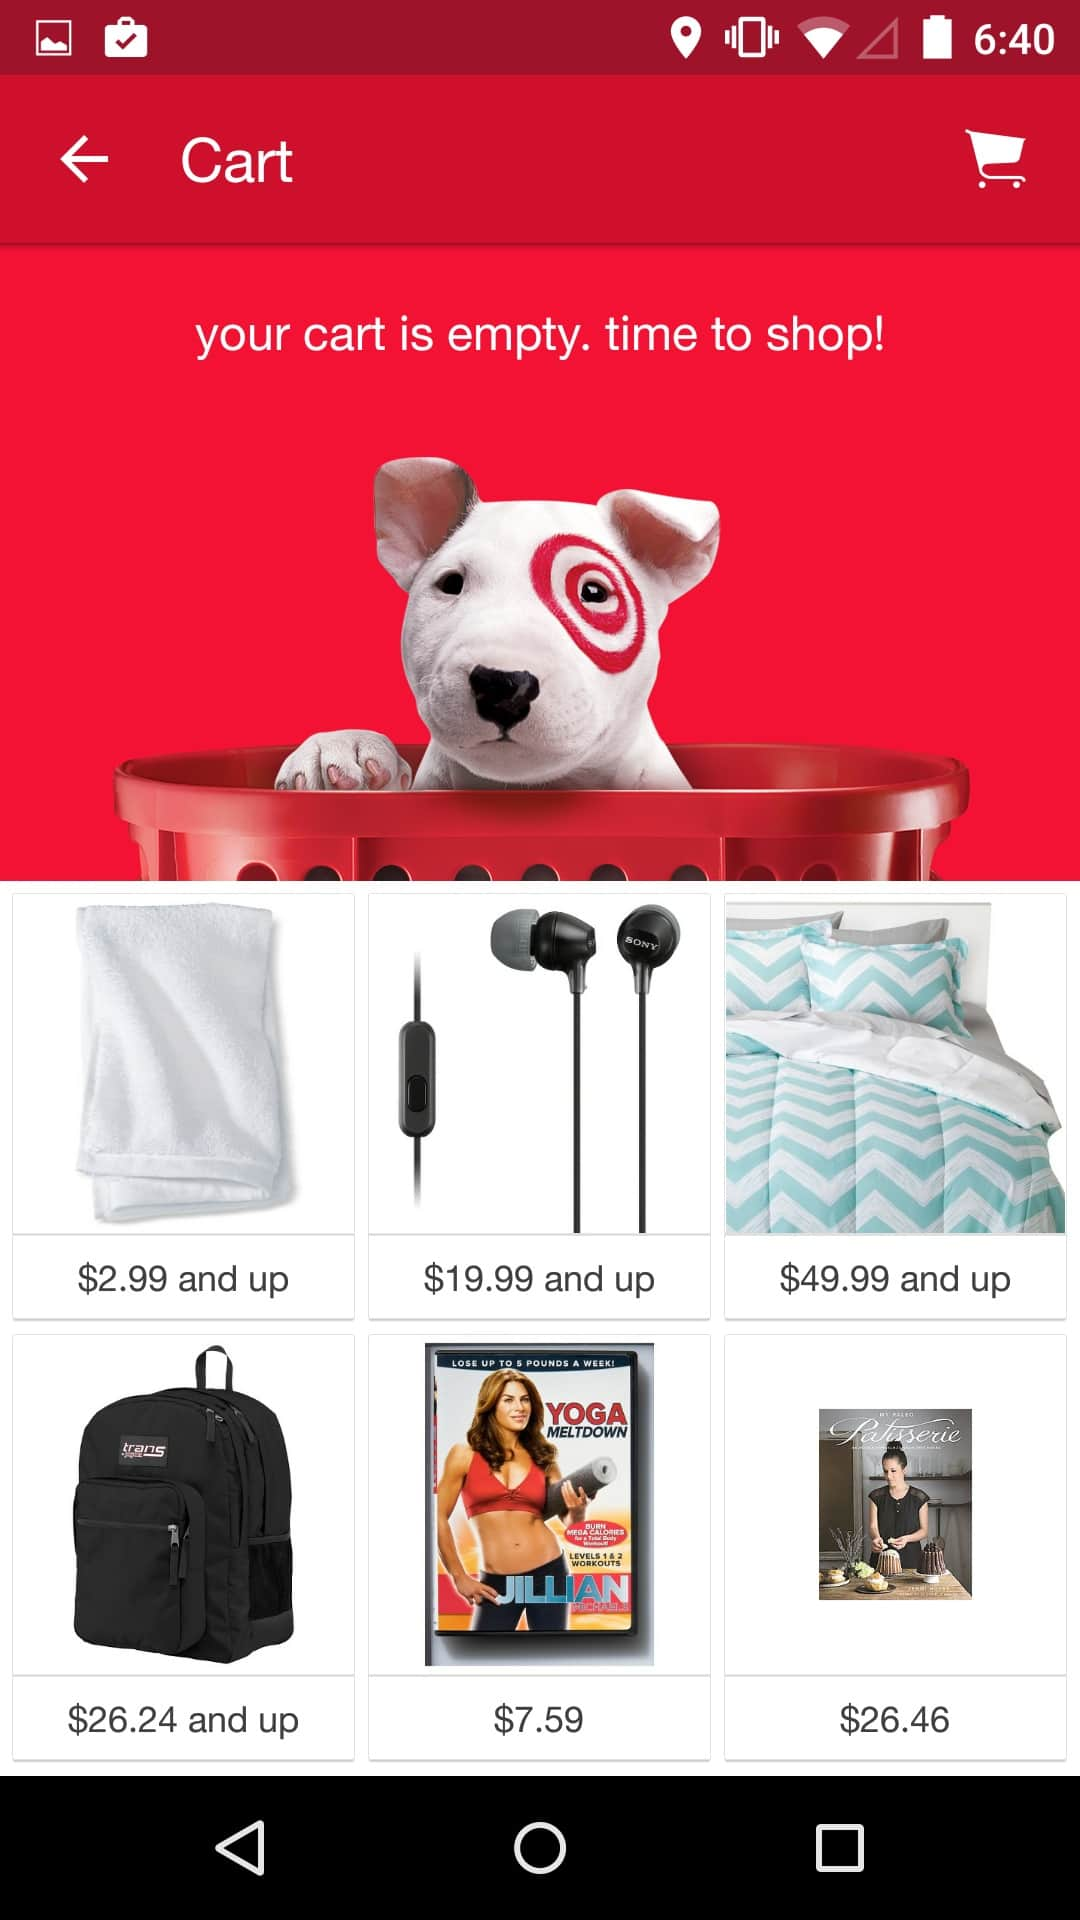 Categories by Target